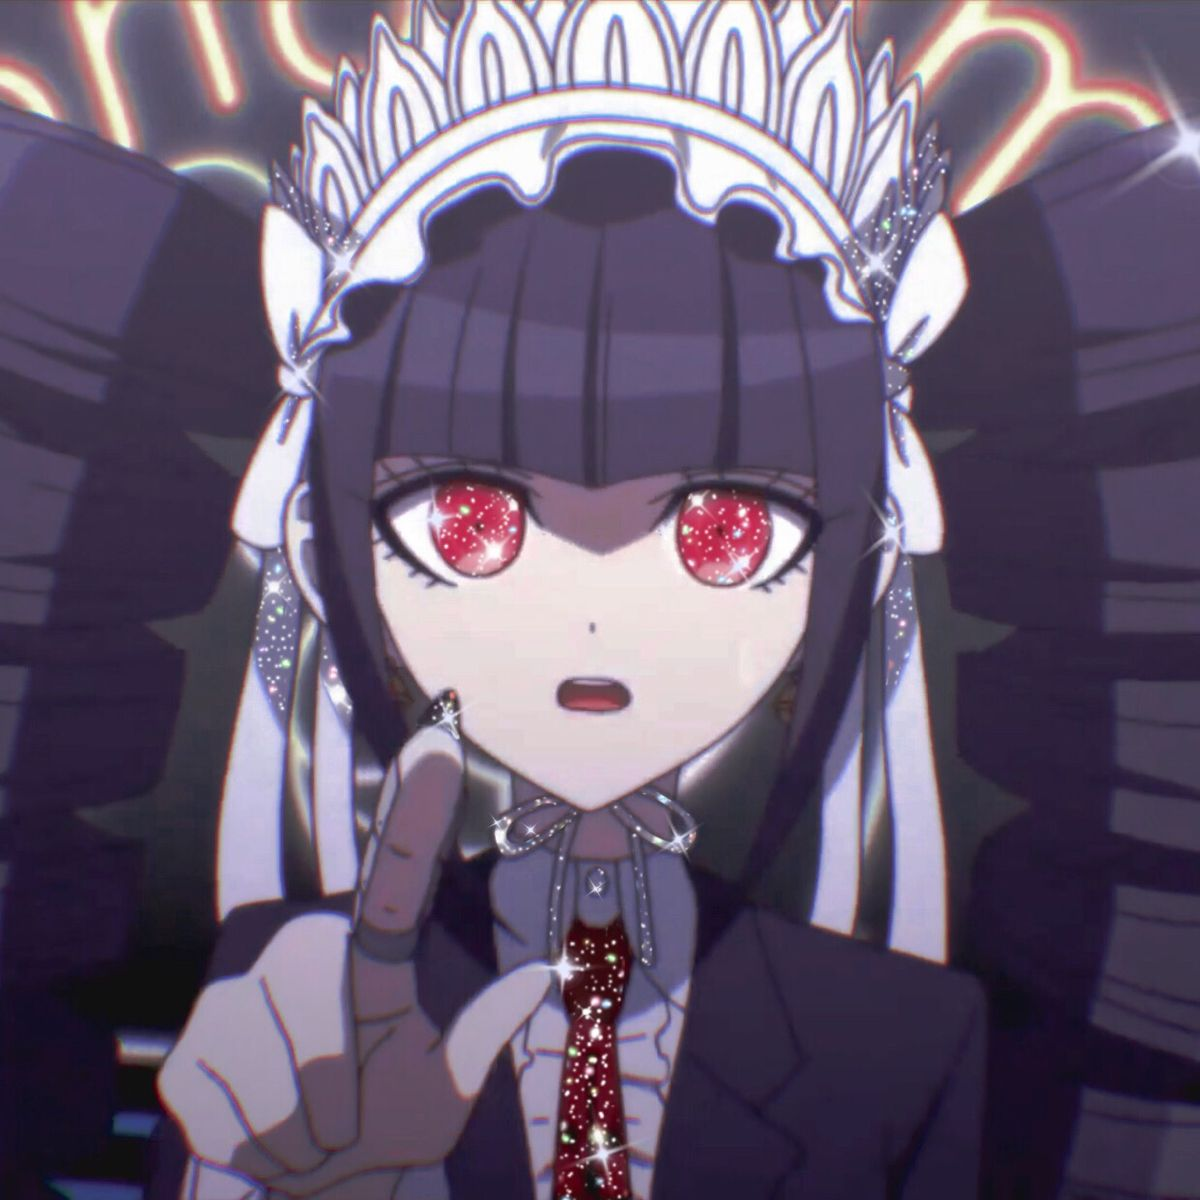 Celestia Ludenberg In 2020 Aesthetic Anime Danganronpa Anime